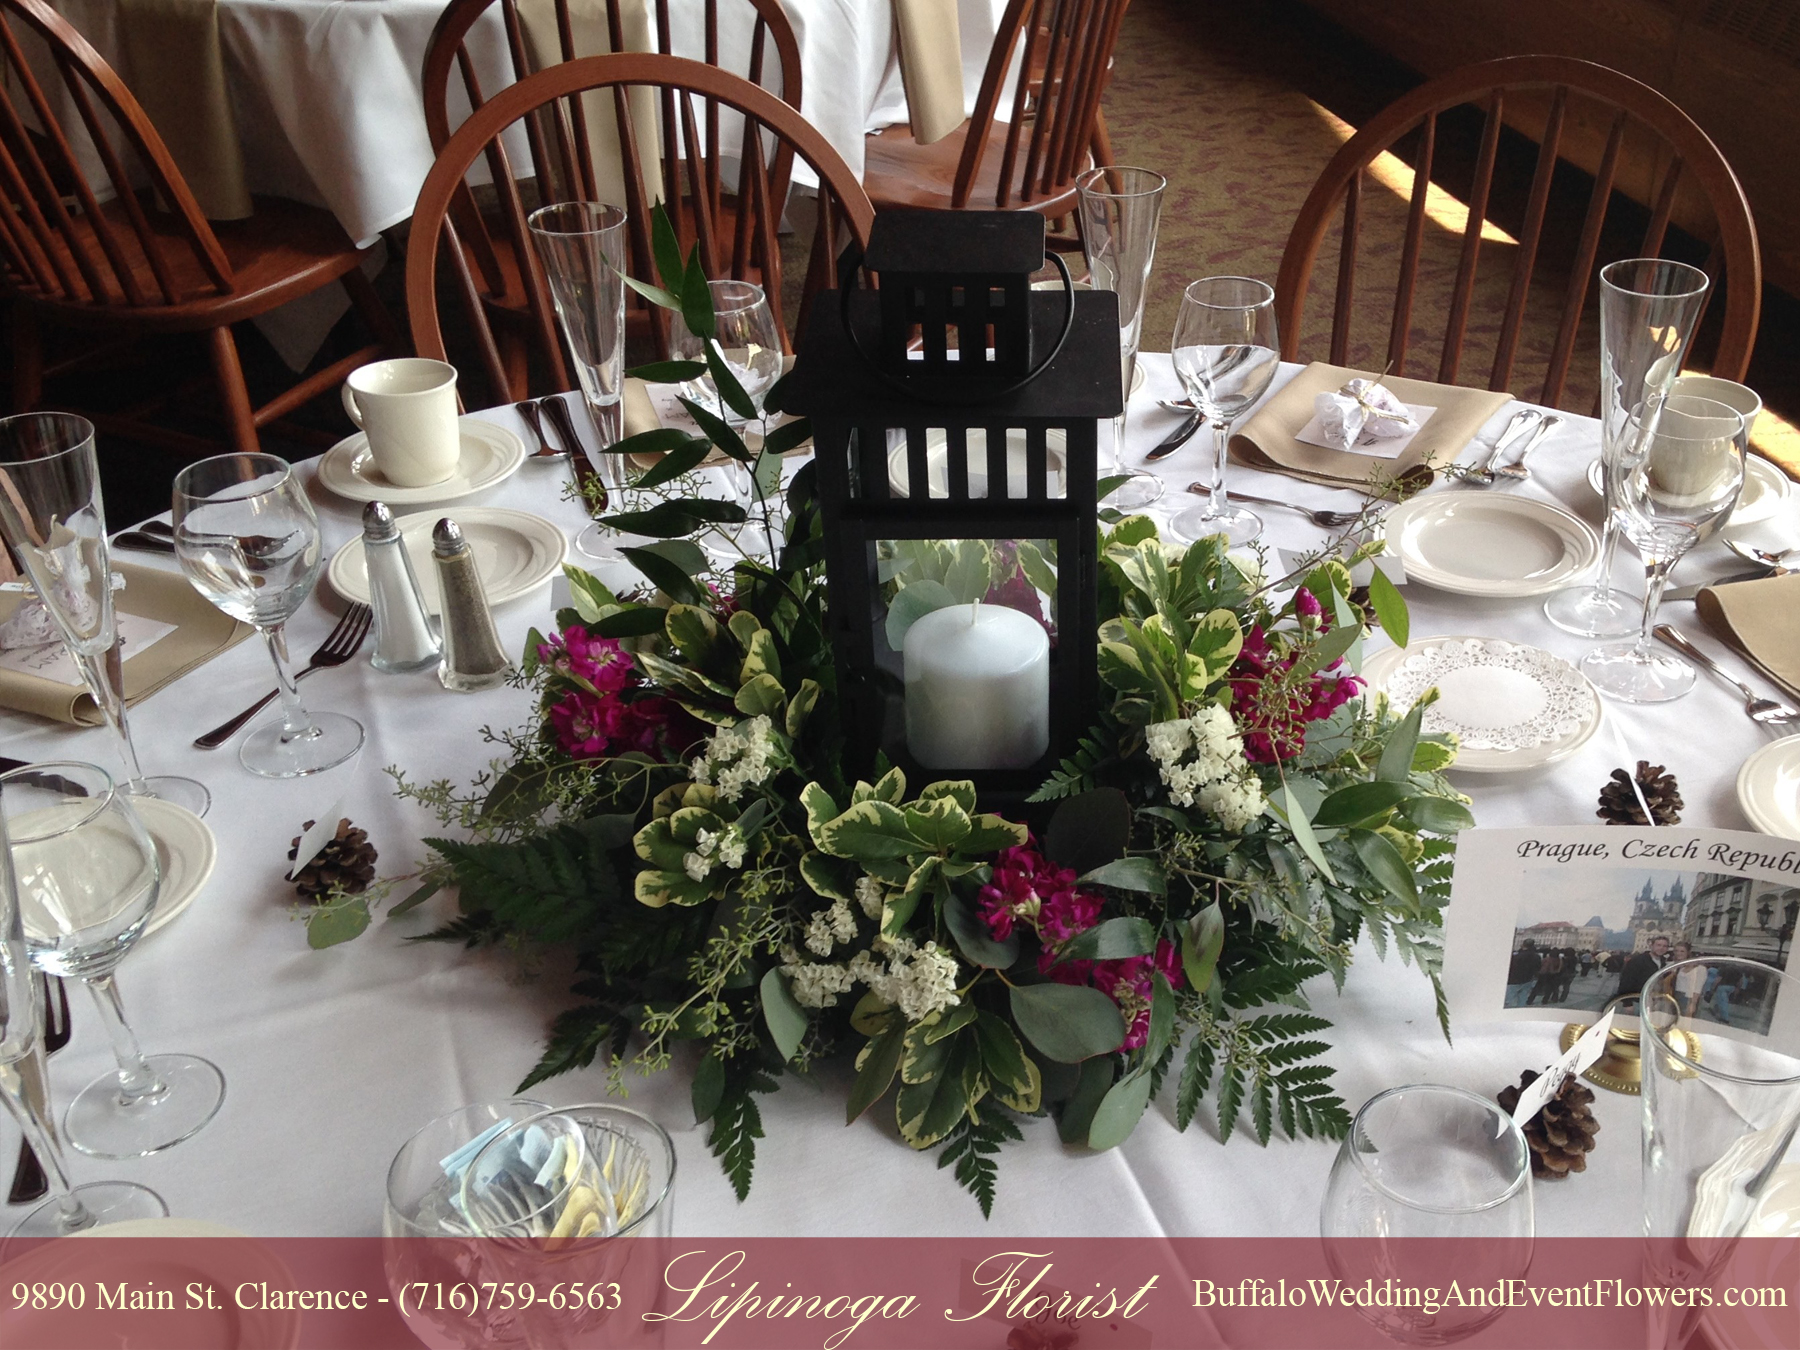 Lantern Wedding Centerpiece Buffalo amp Event